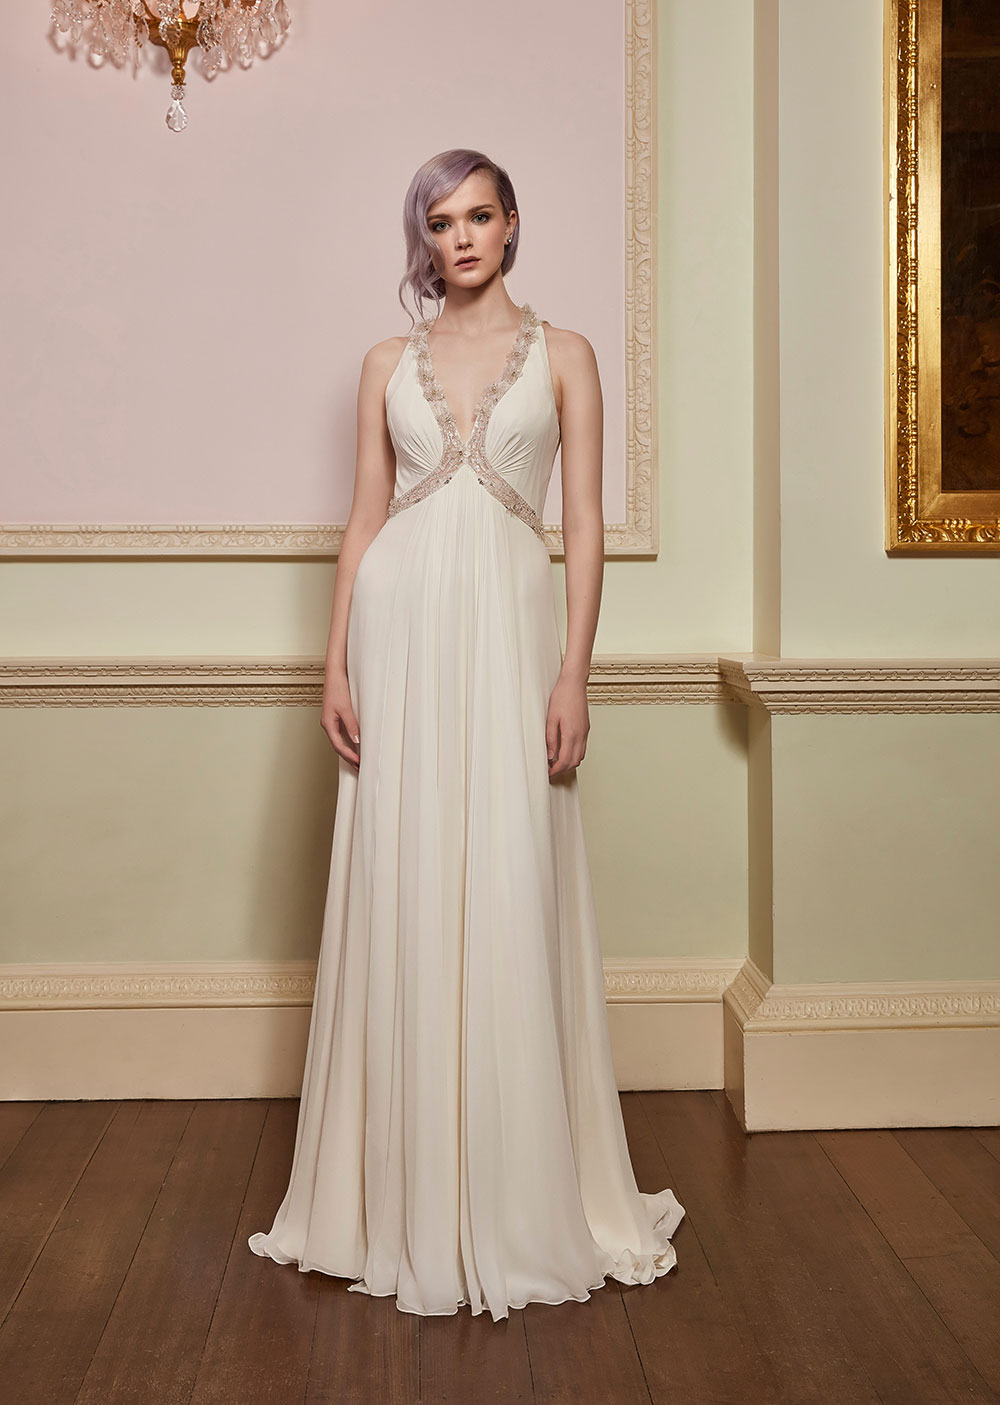 Precious - Jenny Packham 2018 Bridal Collection. www.theweddingnotebook.com